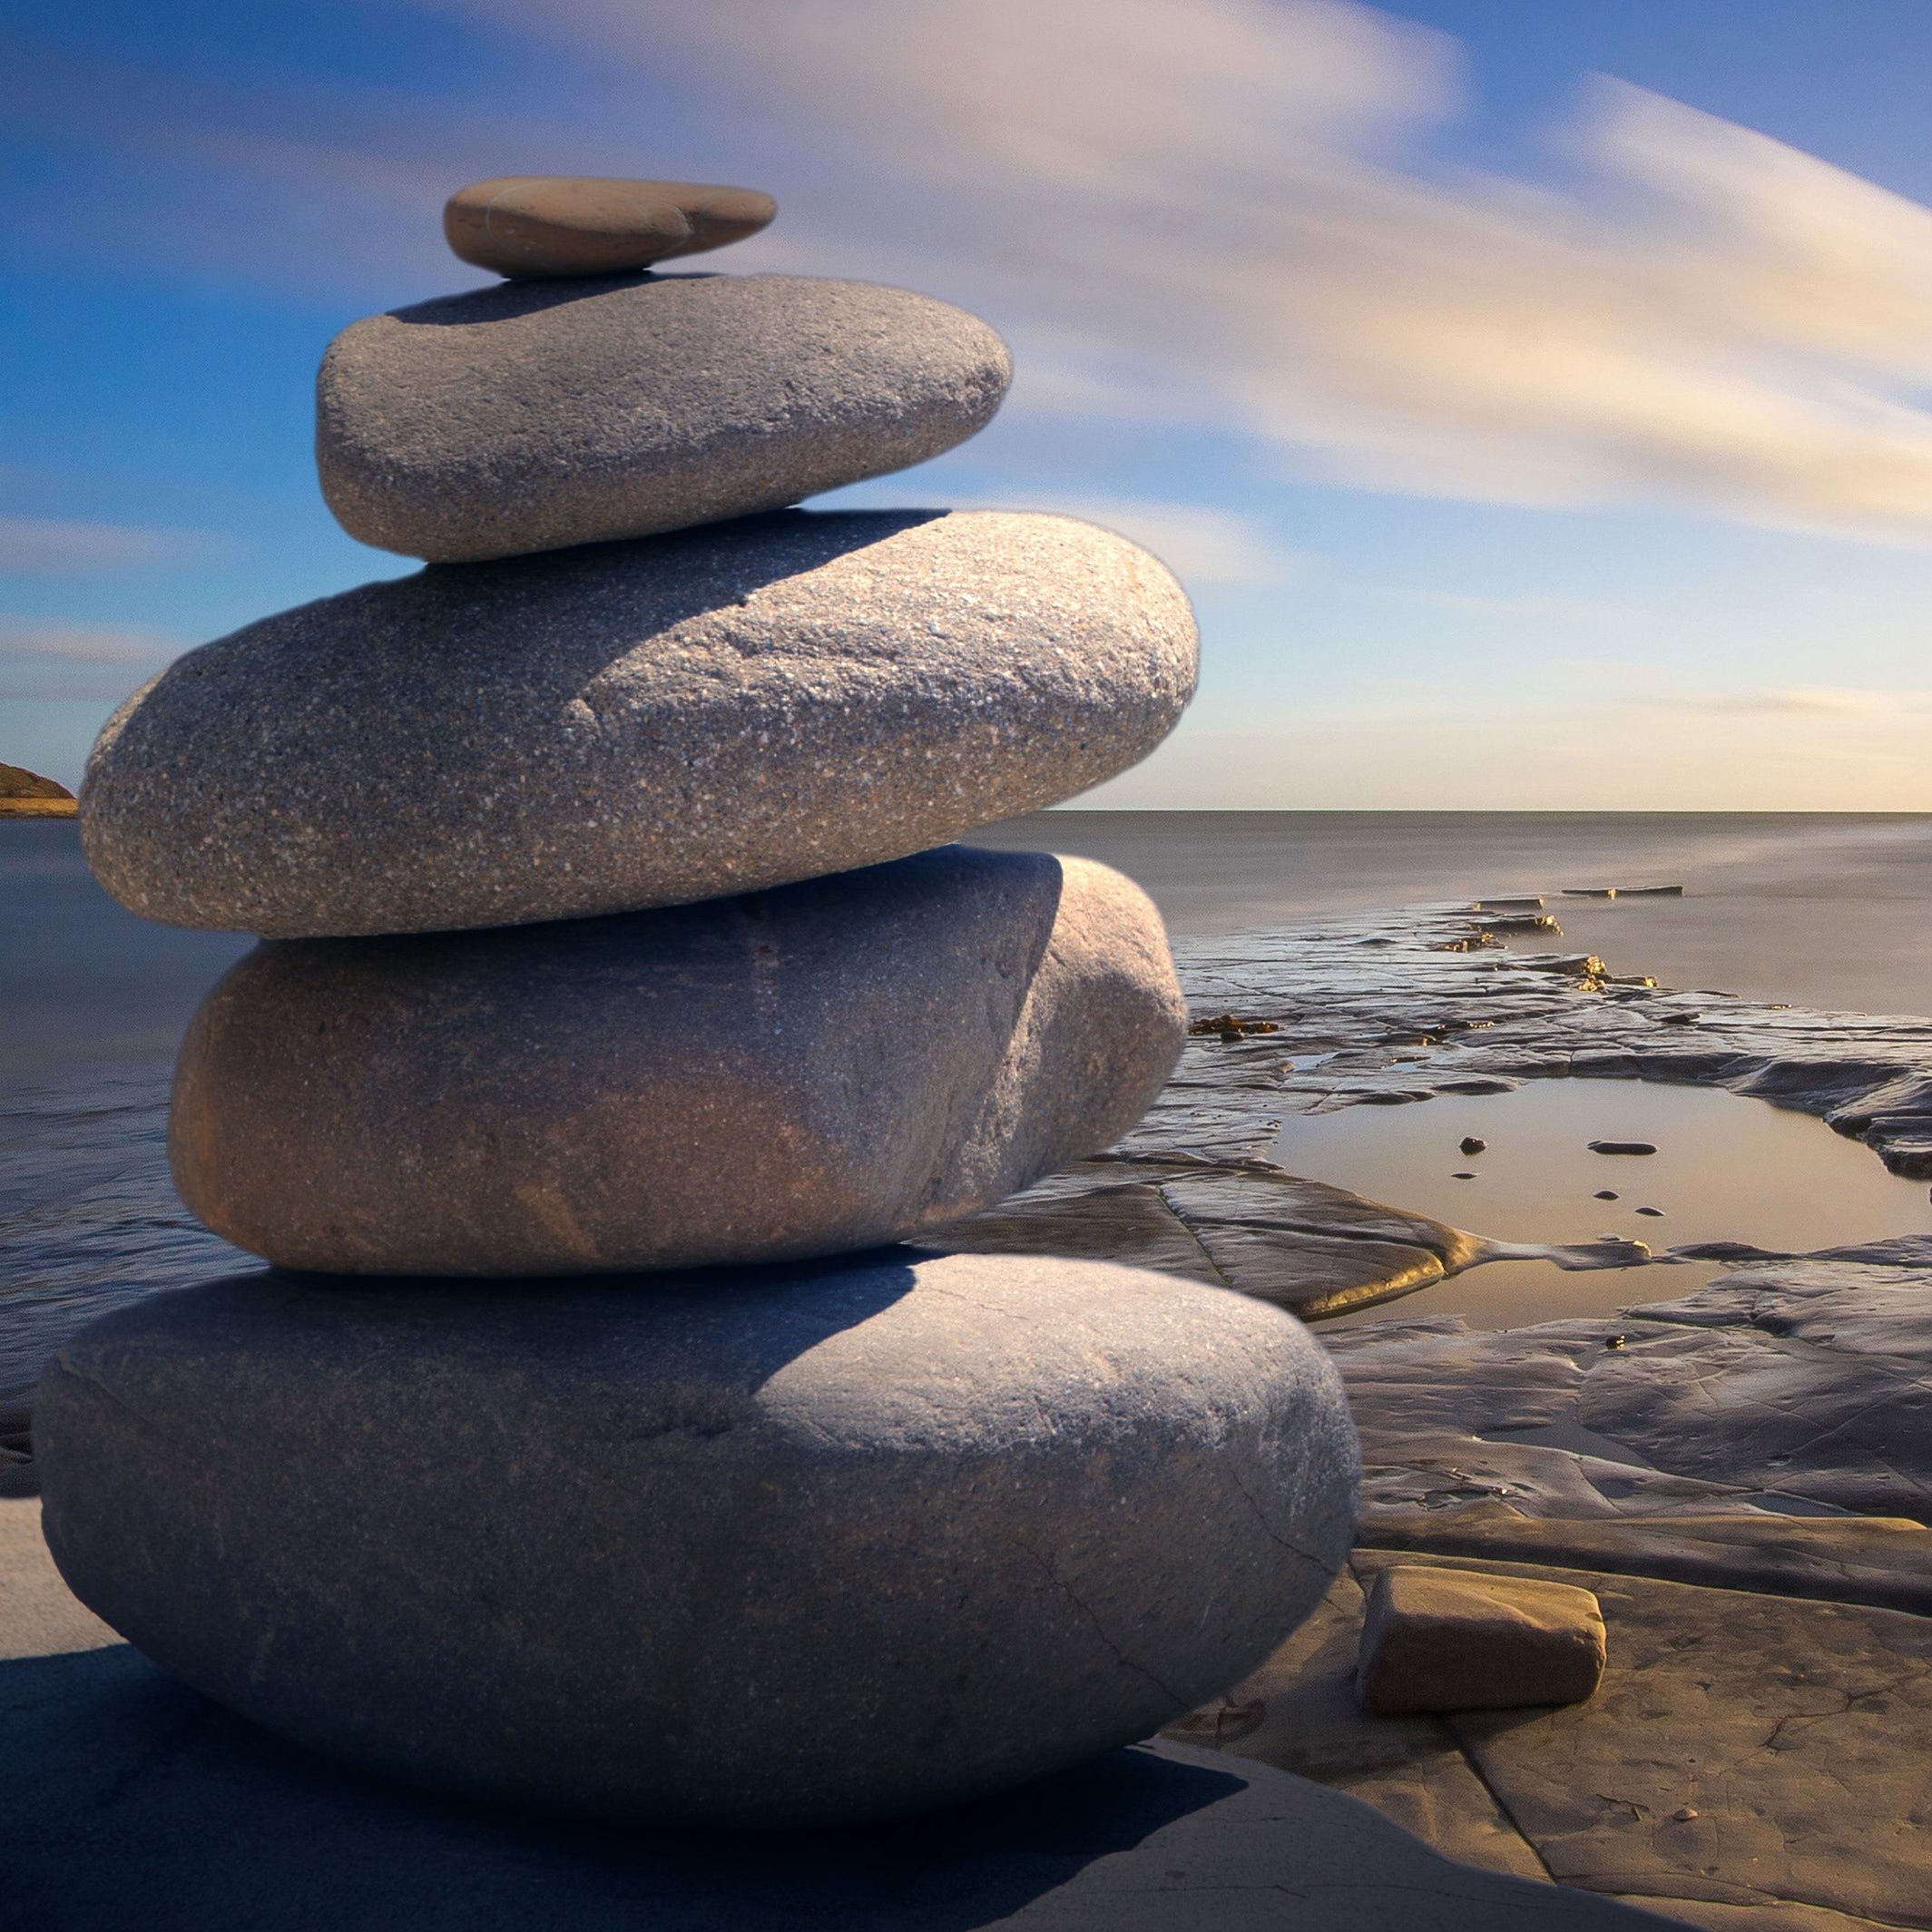 A picture of some stones stacked on top of one another